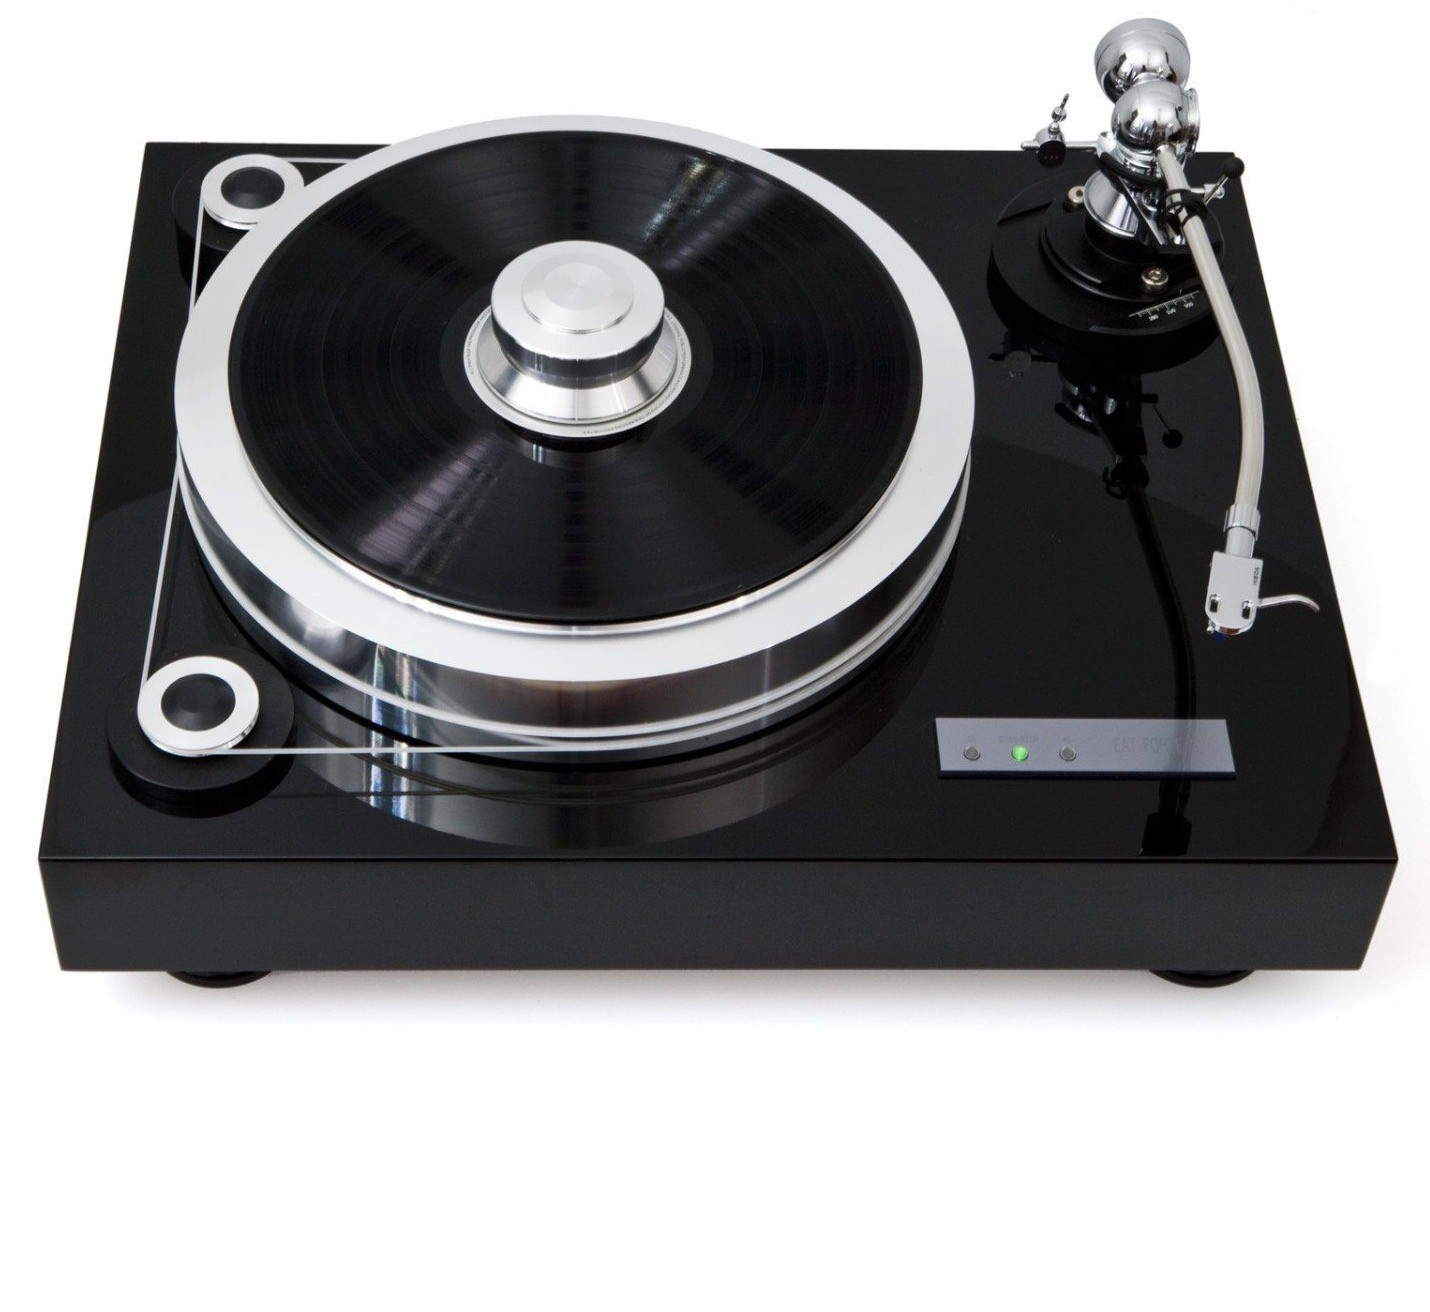 EAT European Audio Team Fortissimo Piano Black Turntable